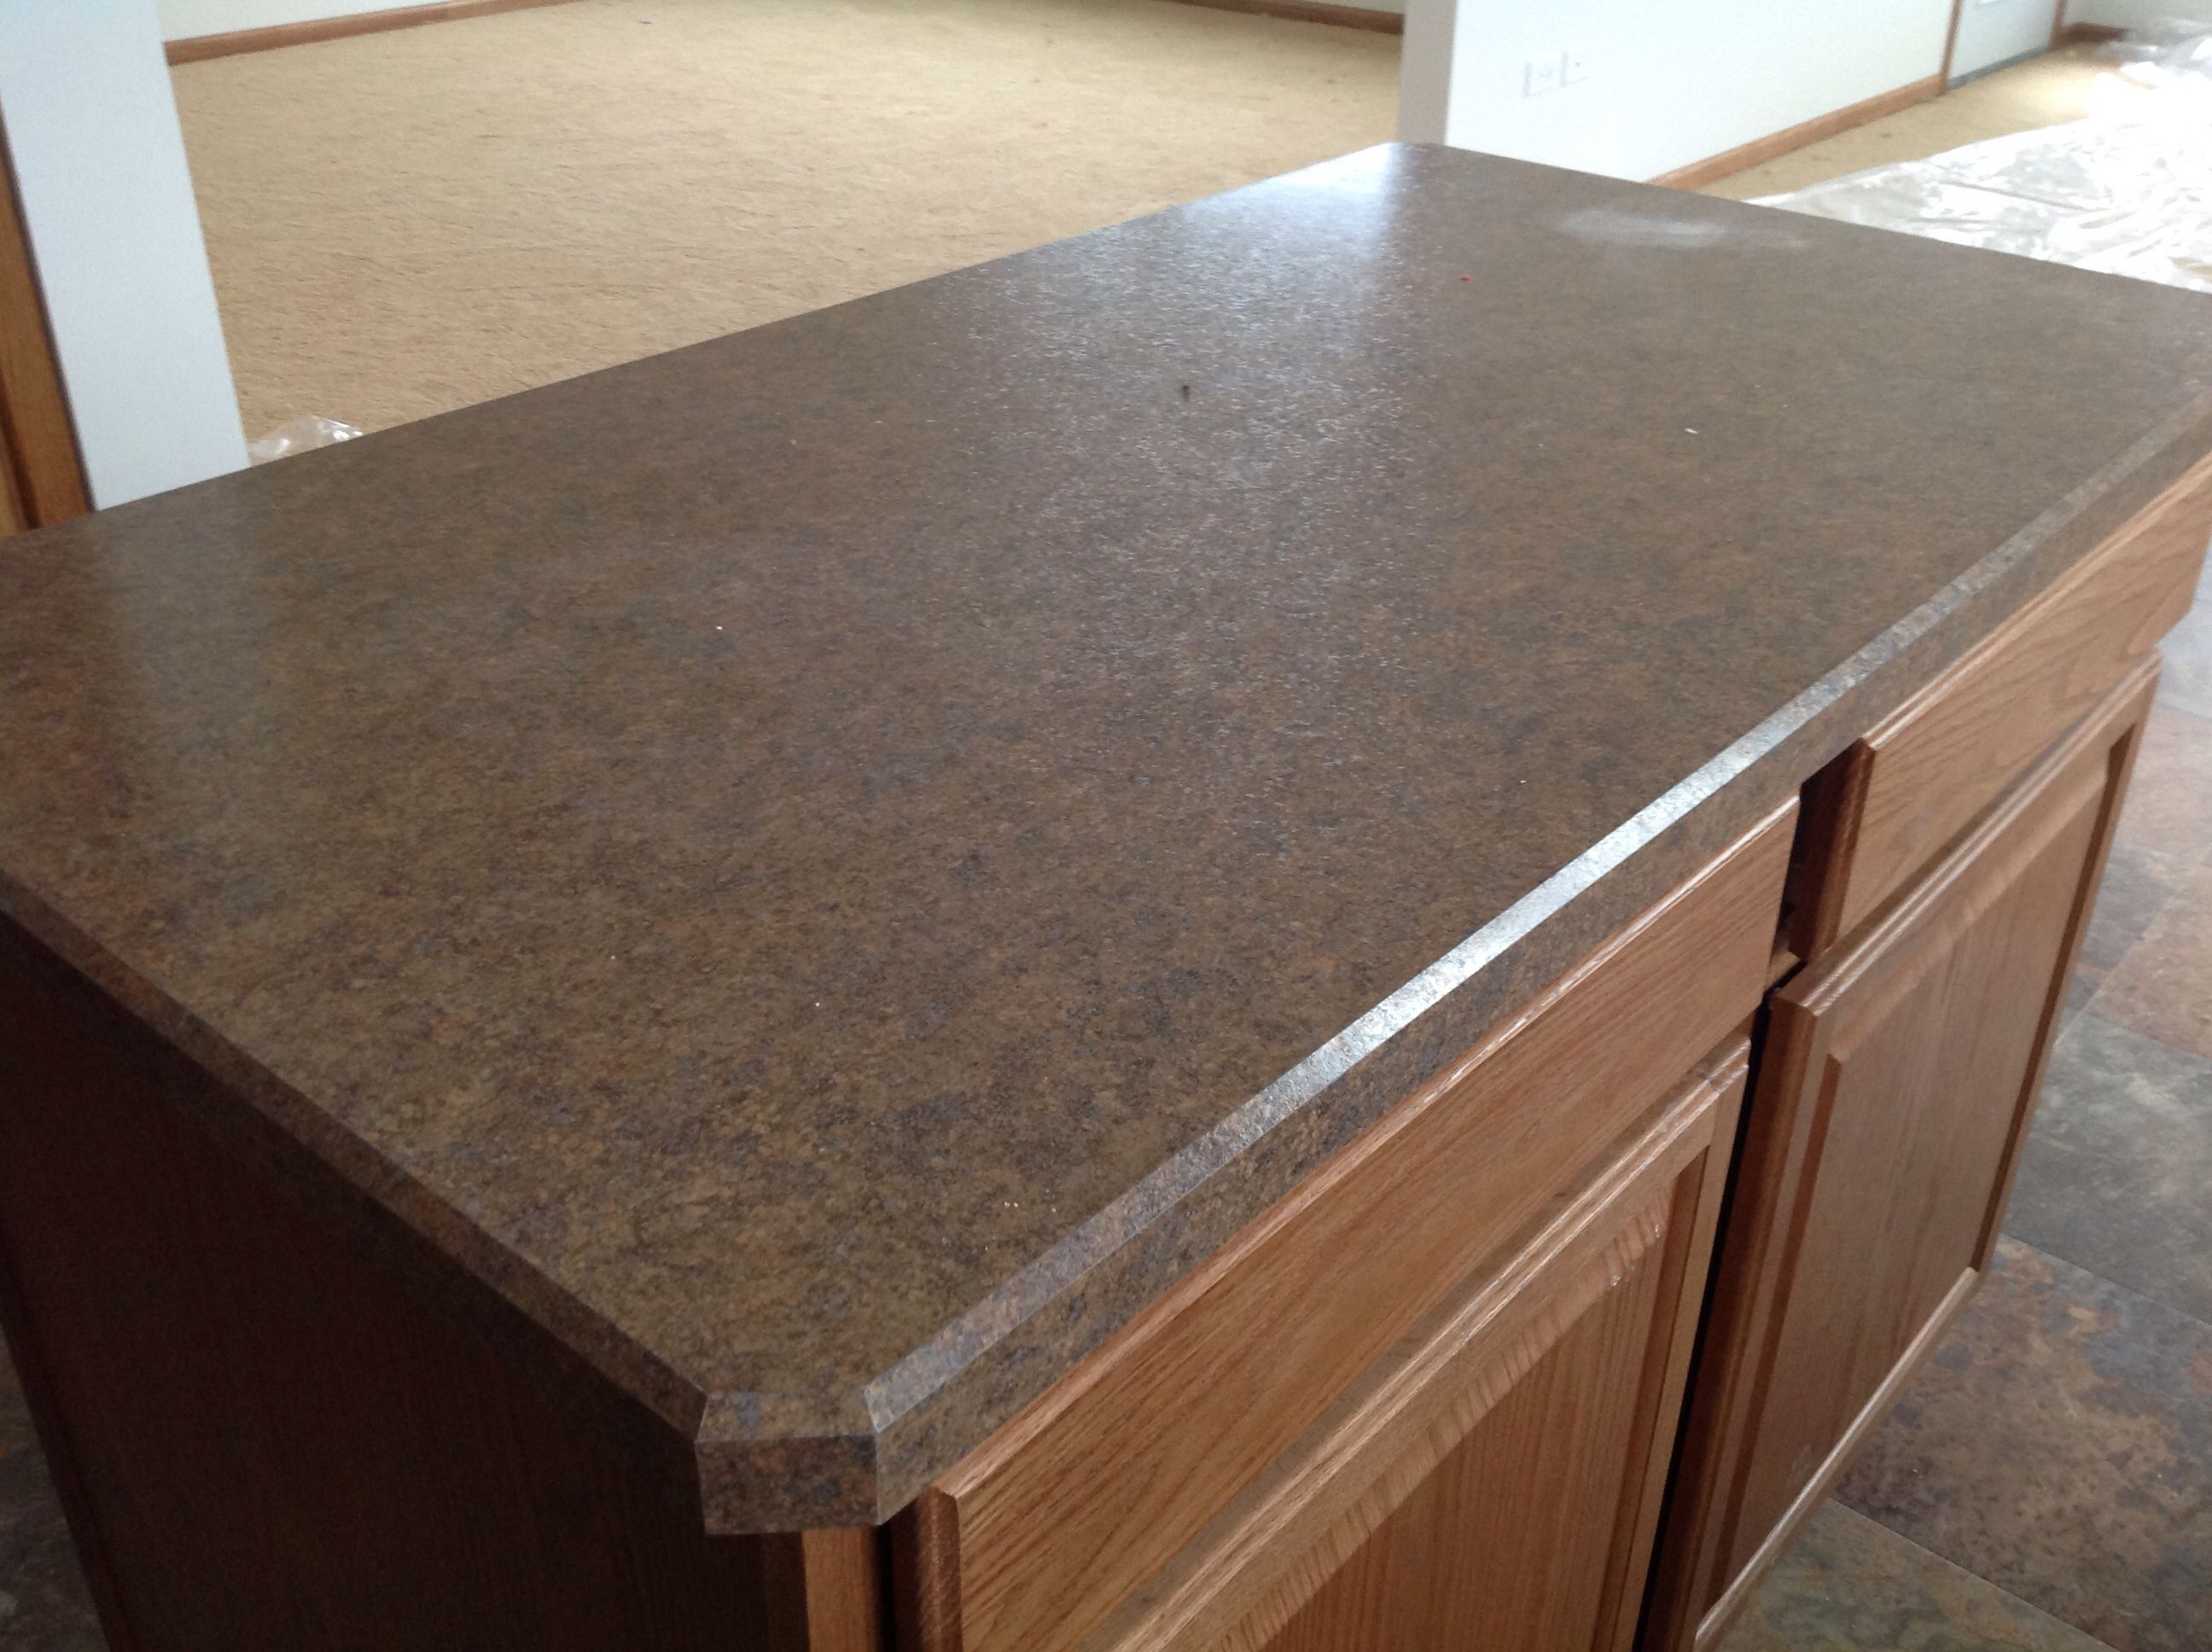 Wilsonart Hd Countertop With Beveled Edge Lago Vista